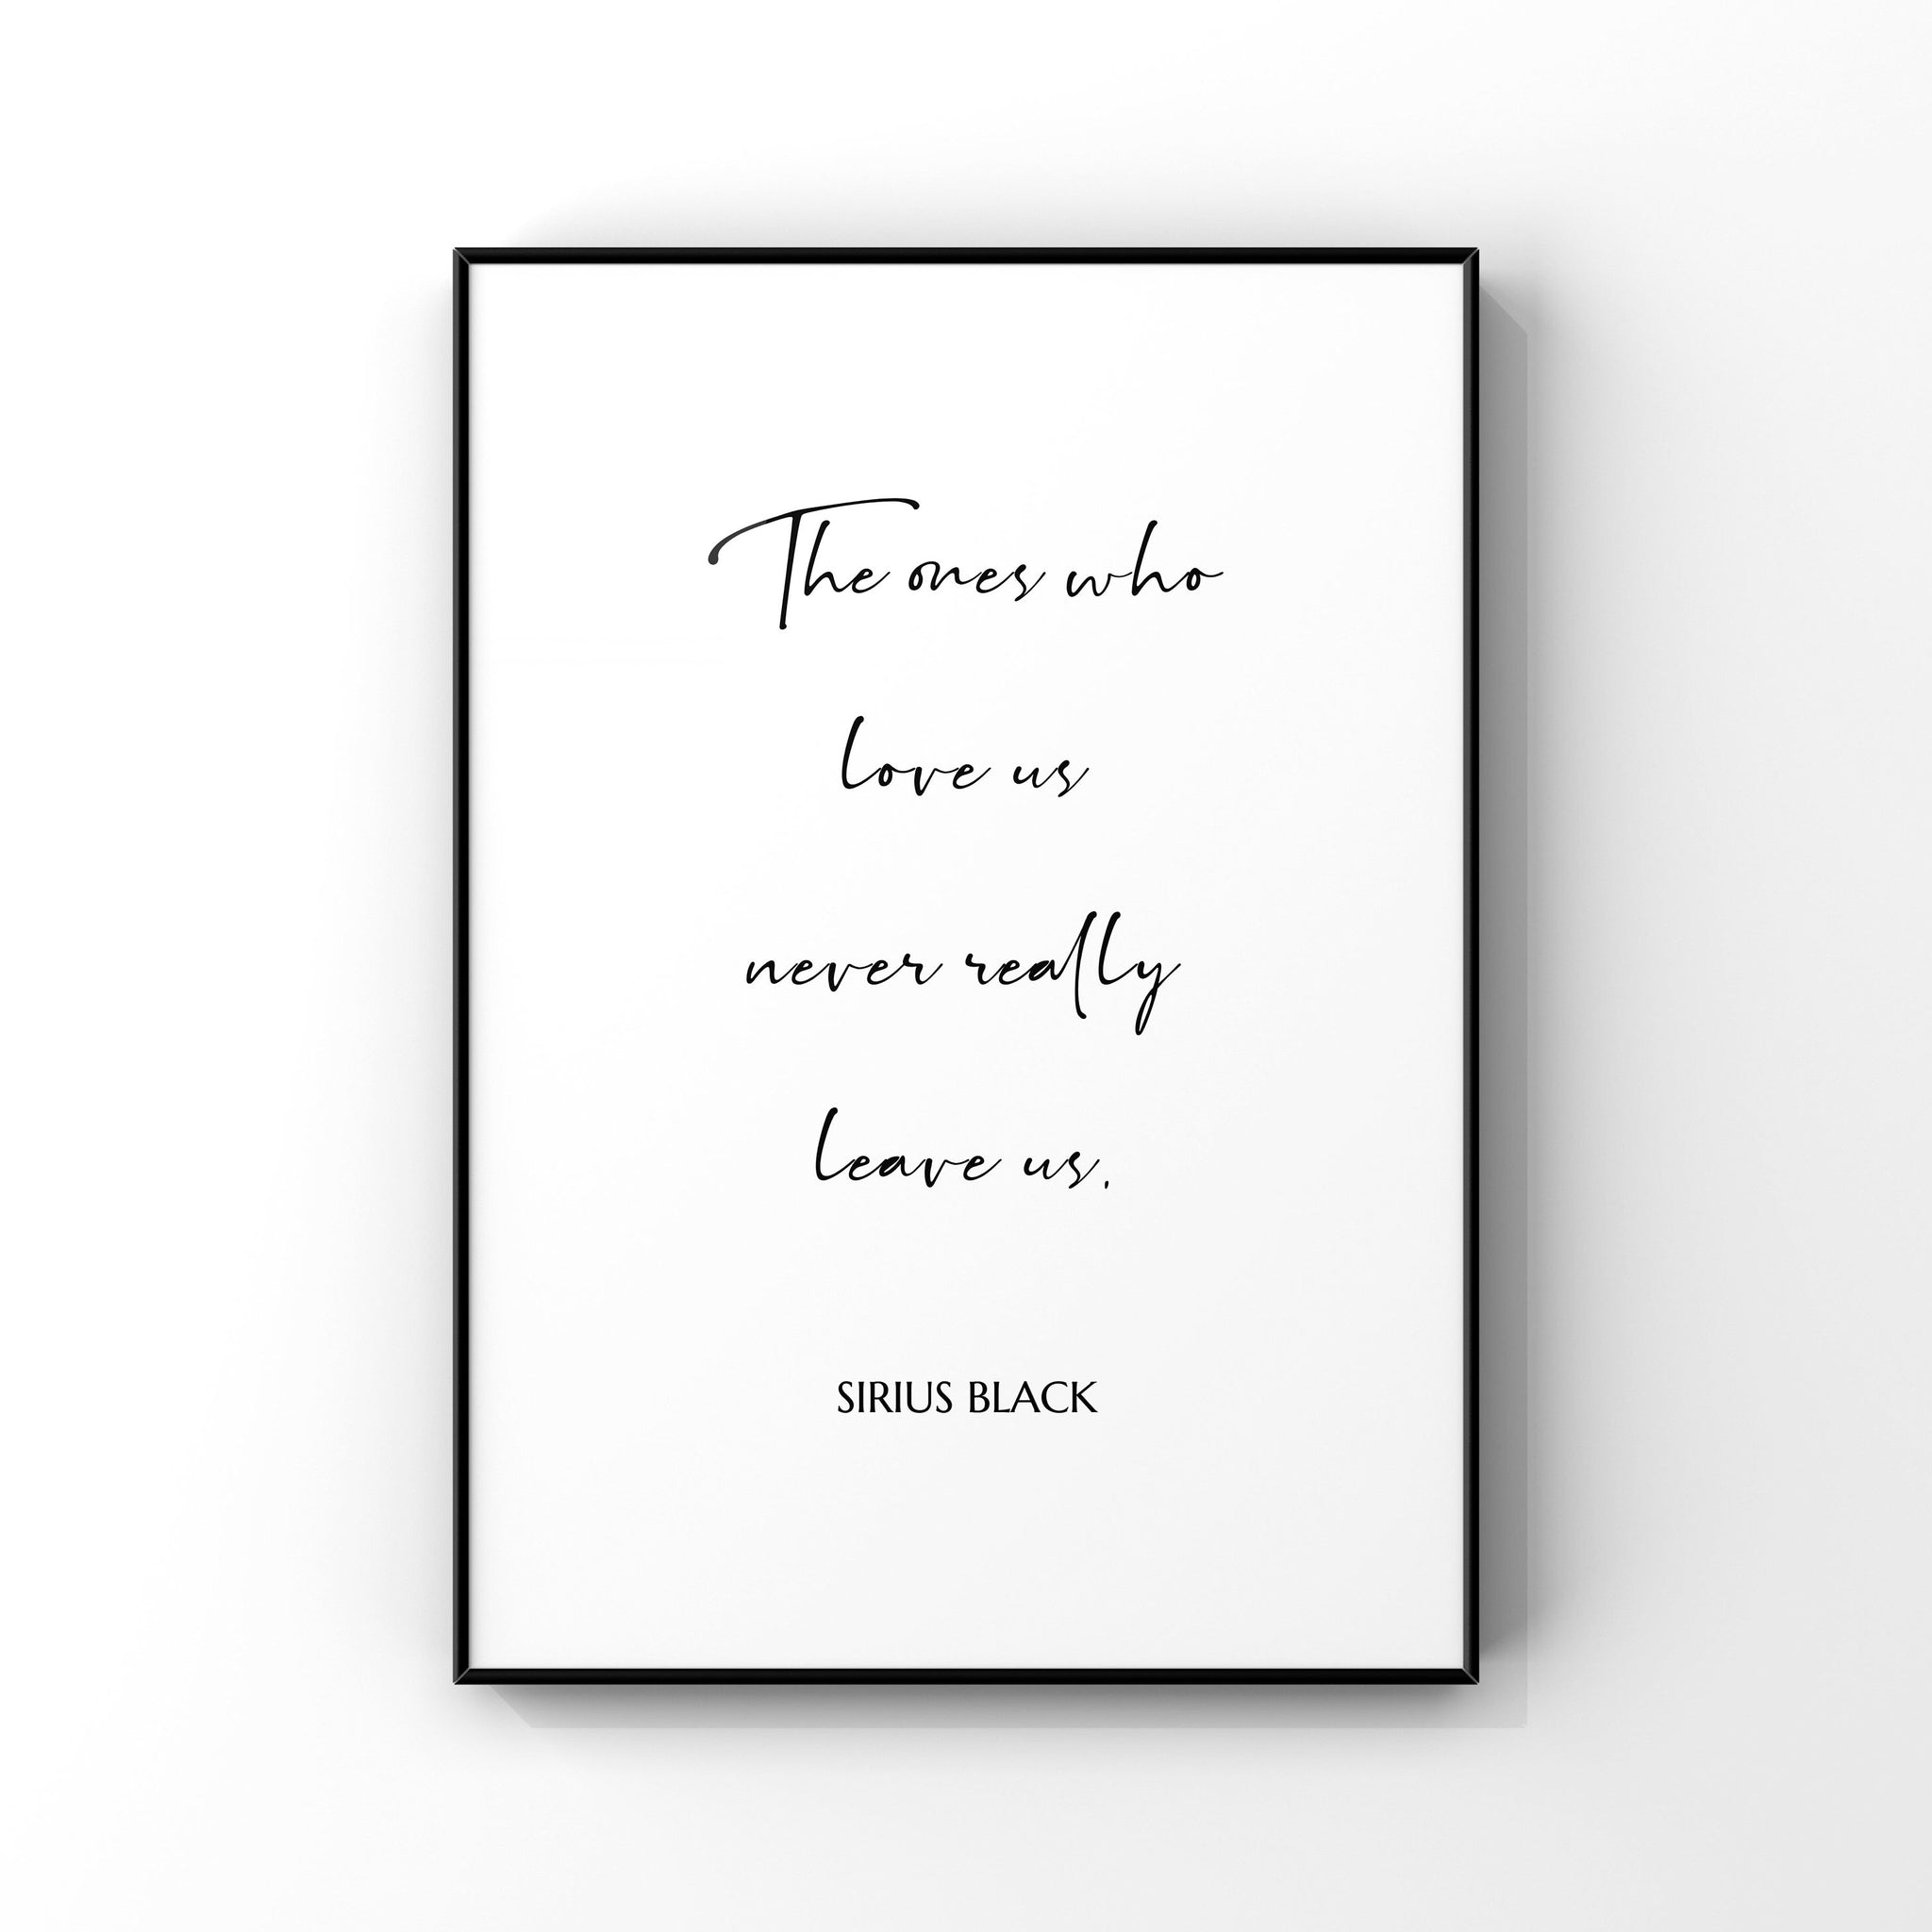 The ones who love us never leave us, Harry Potter Quote Art, Harry Potter Wall Art, Harry Potter Prints, Harry Potter Wall Decor, Minimalist